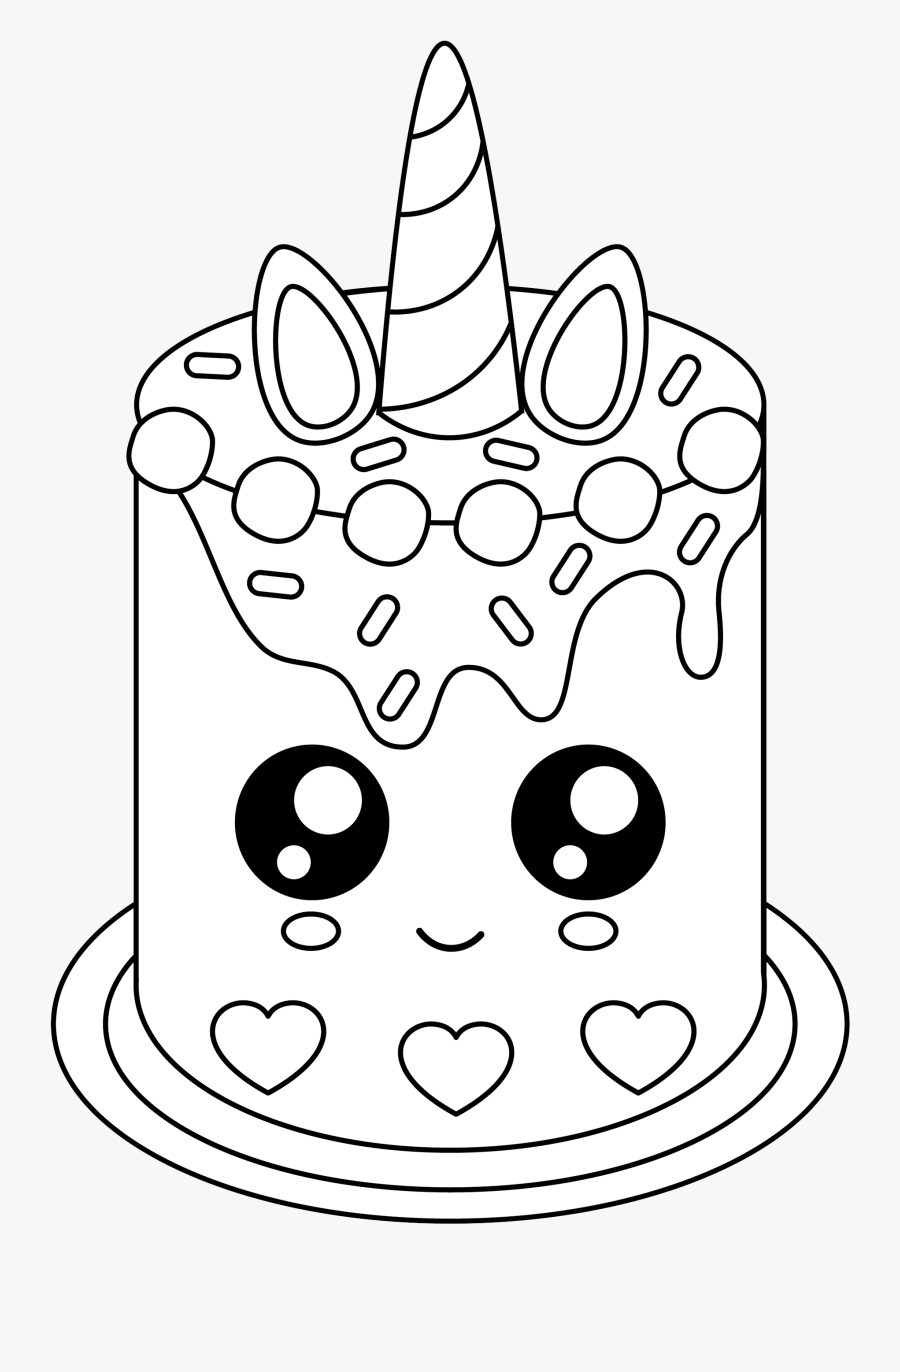 kawaii printable unicorn coloring pages cute unicorn coloring pages for you printable coloring kawaii unicorn pages